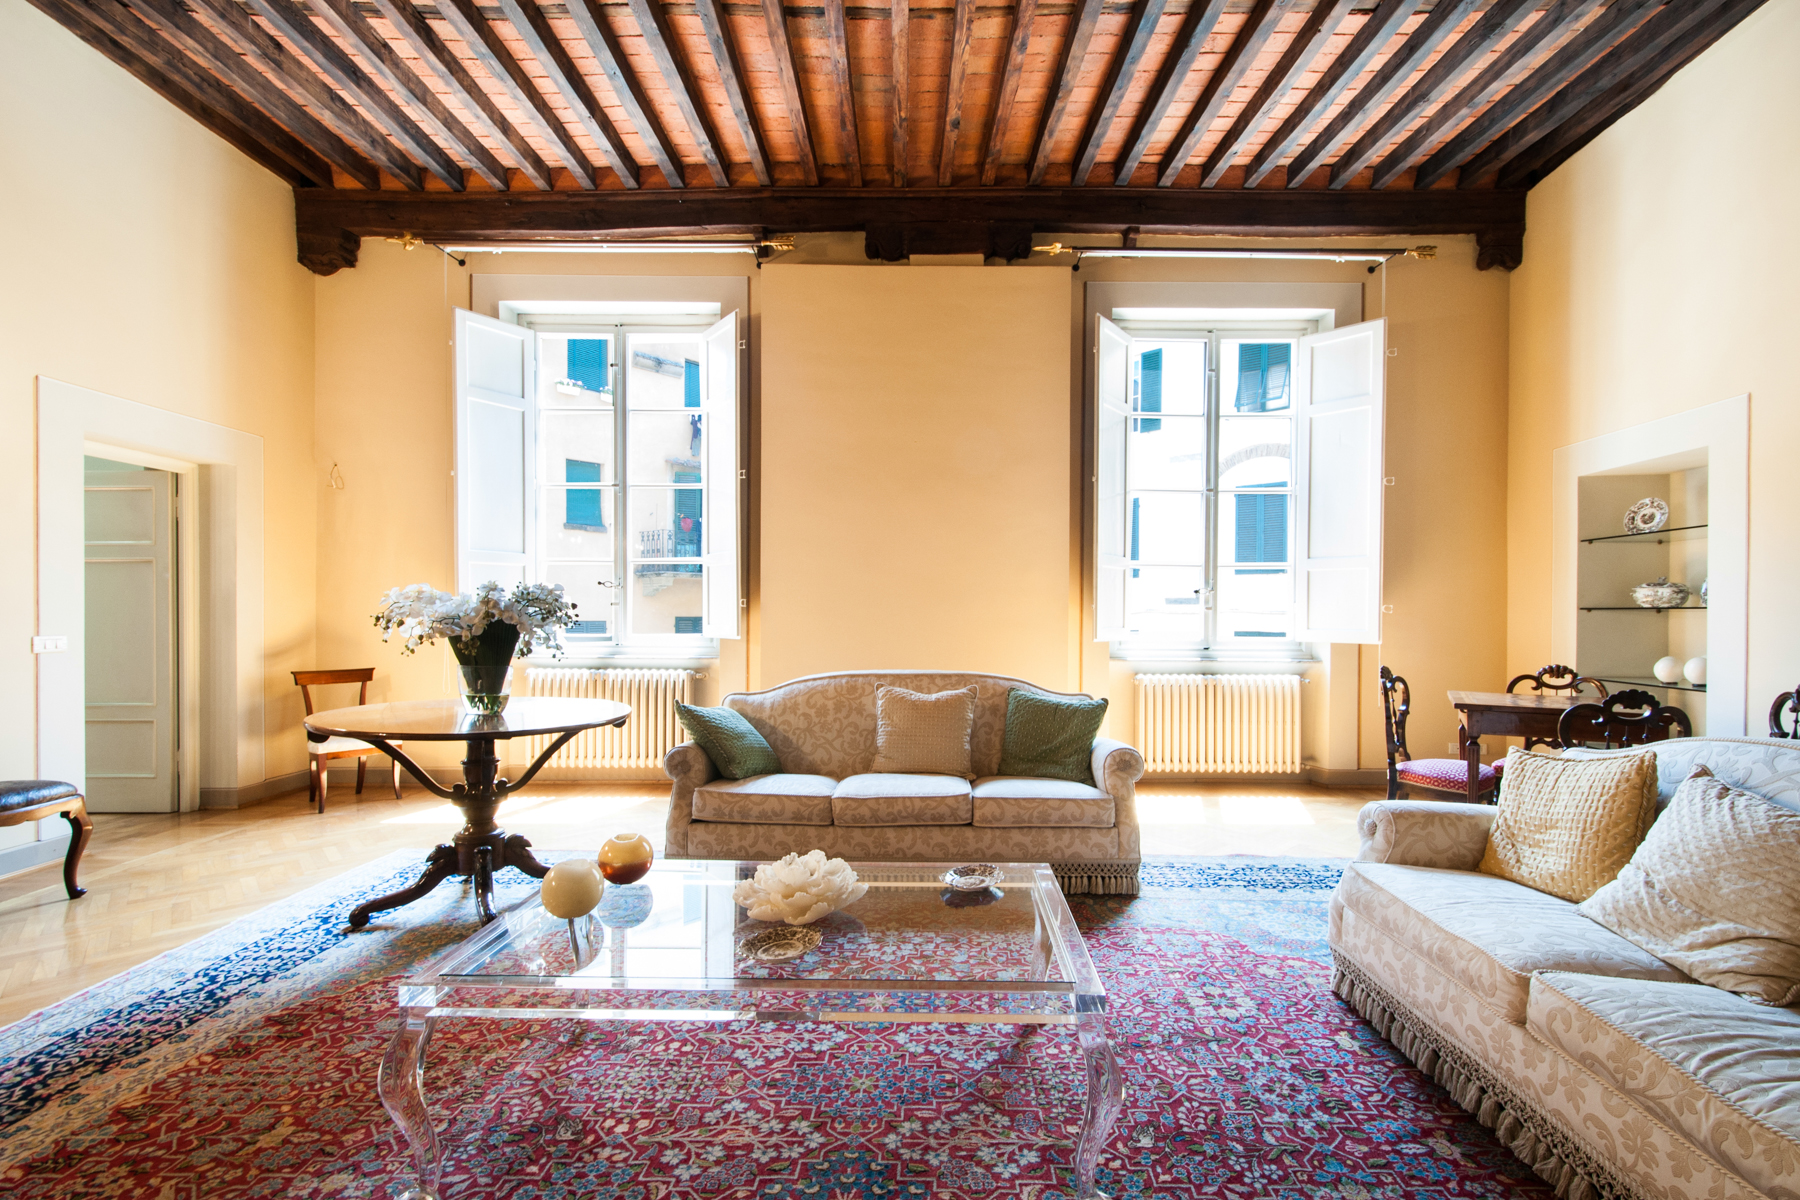 Single Family Home for Sale at Splendid townhouse in Lucca Piazza delle Grazie Lucca, Lucca 50100 Italy